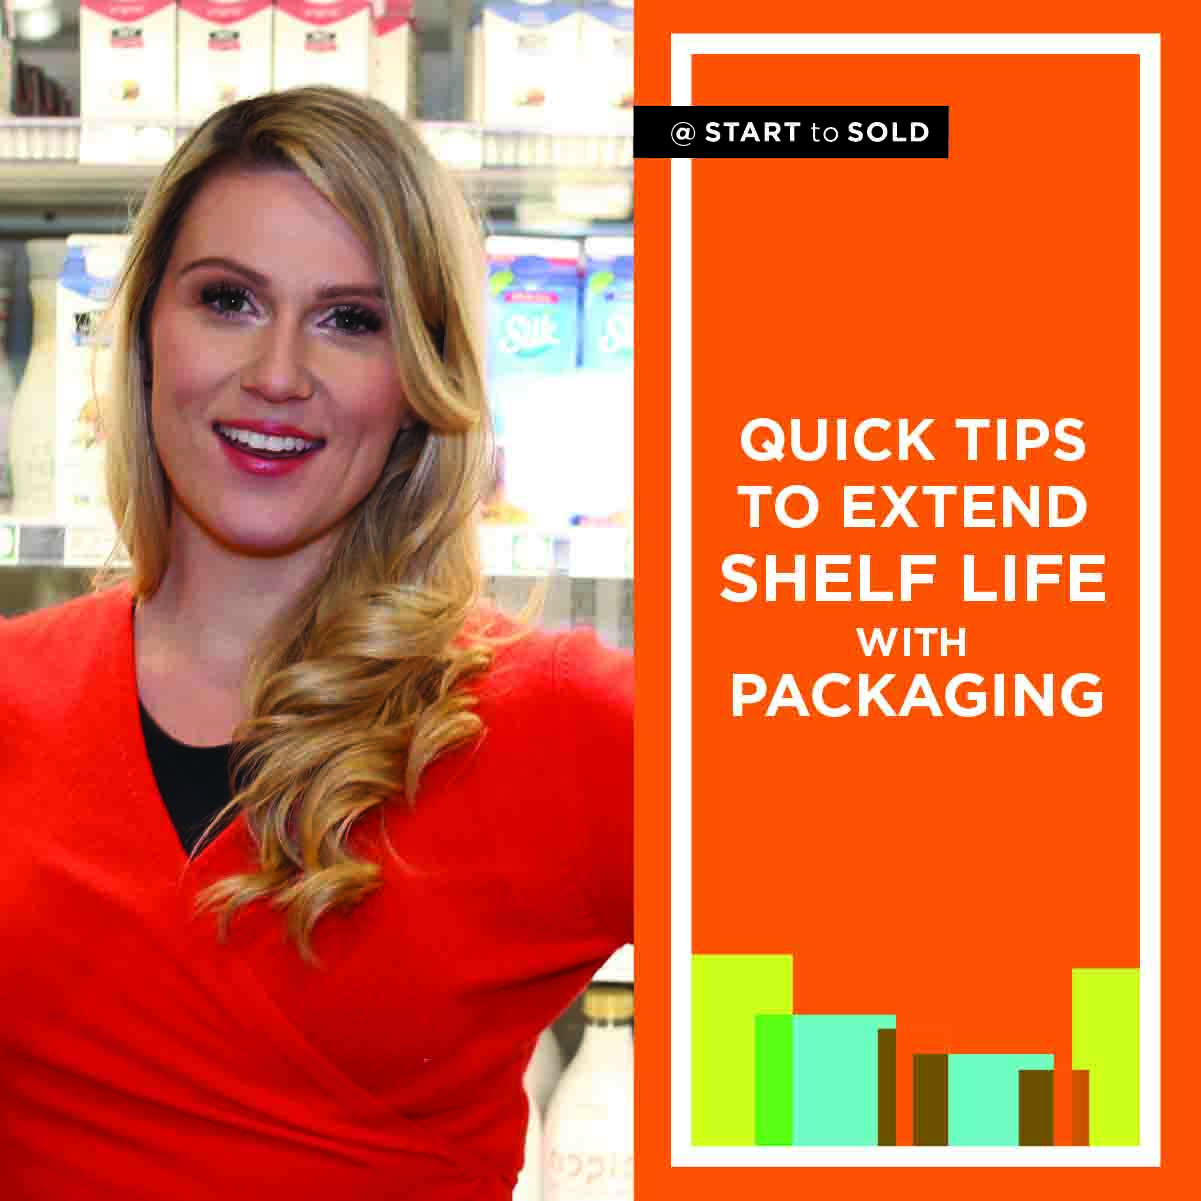 Quick Tips to Extend Shelf Life With Packaging